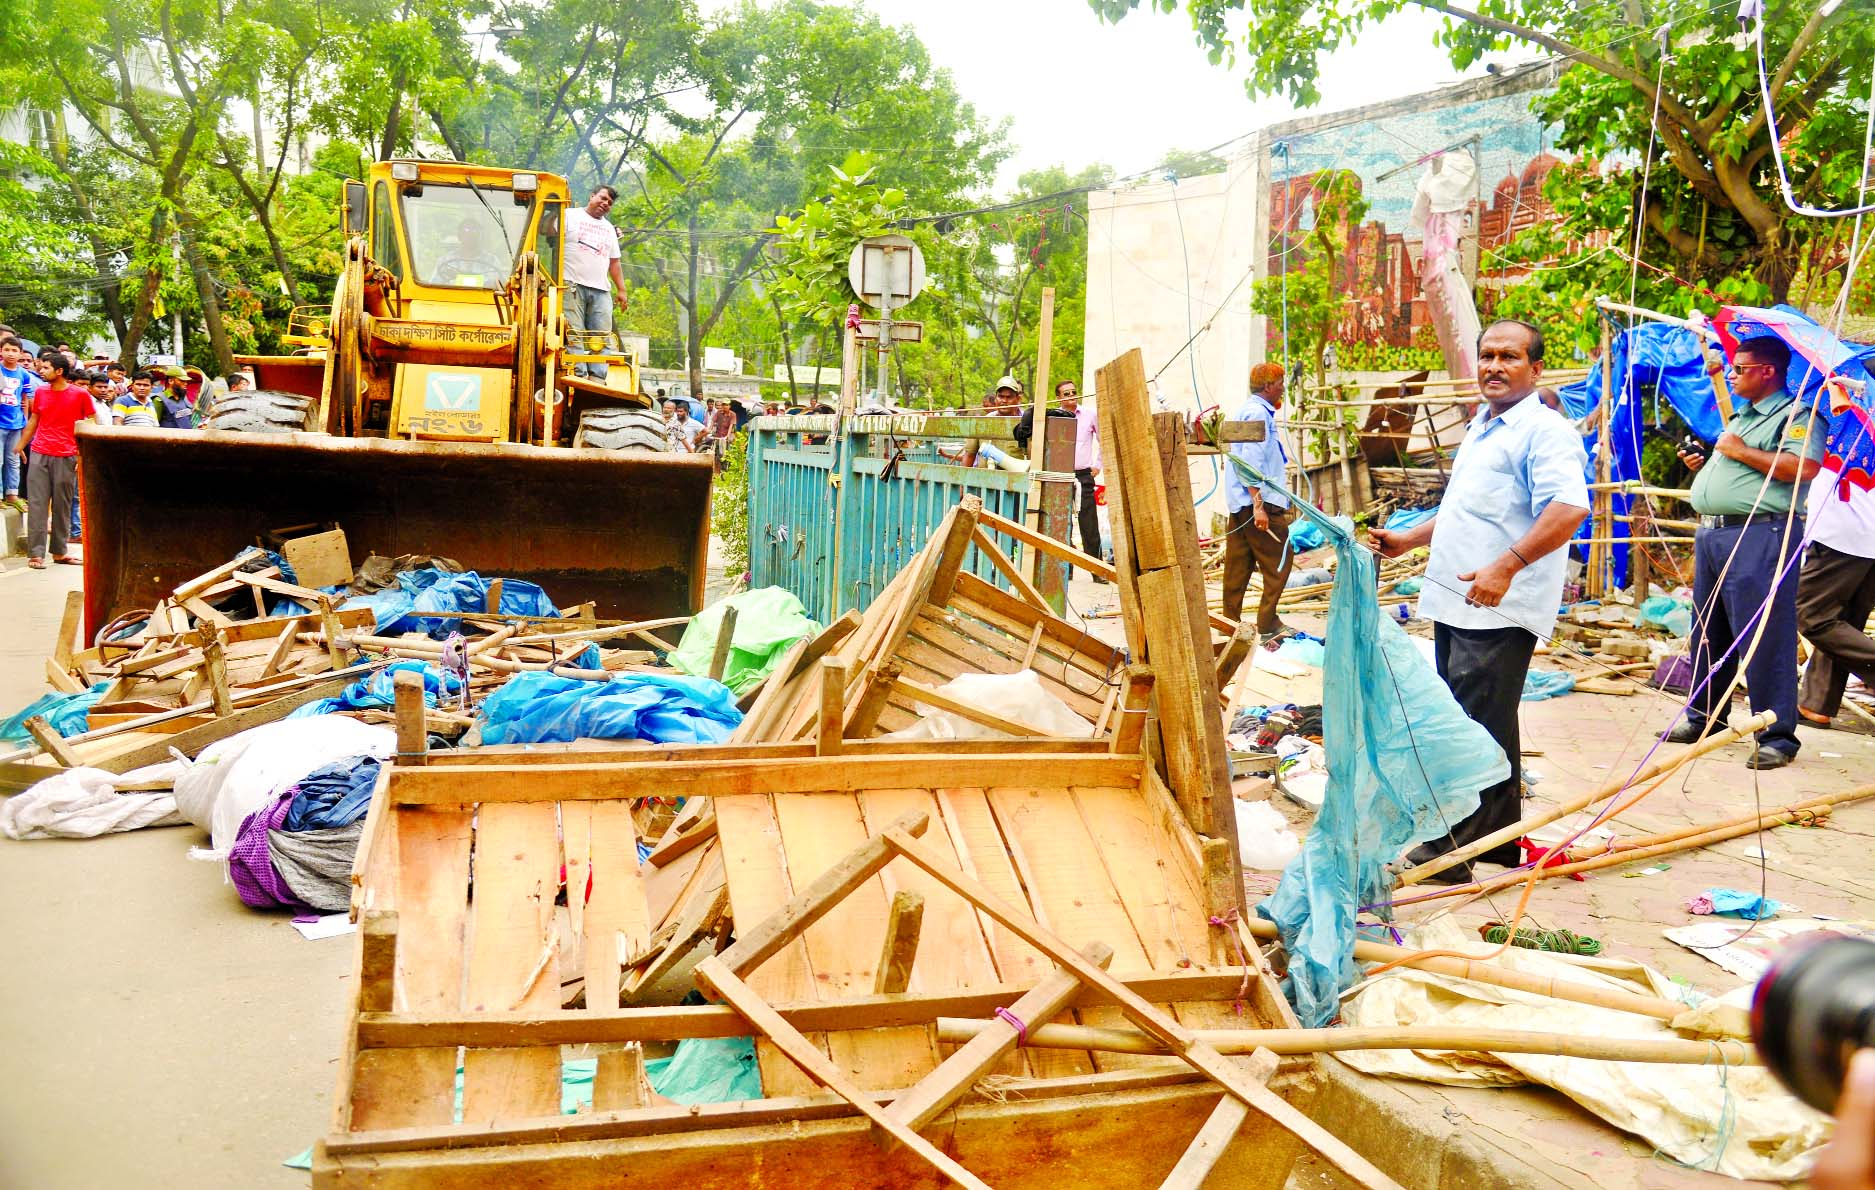 Dhaka-South City Corporation evicted unauthorised structures being set up beside the road and on footpaths near New Market. This photo was taken on Wednesday.